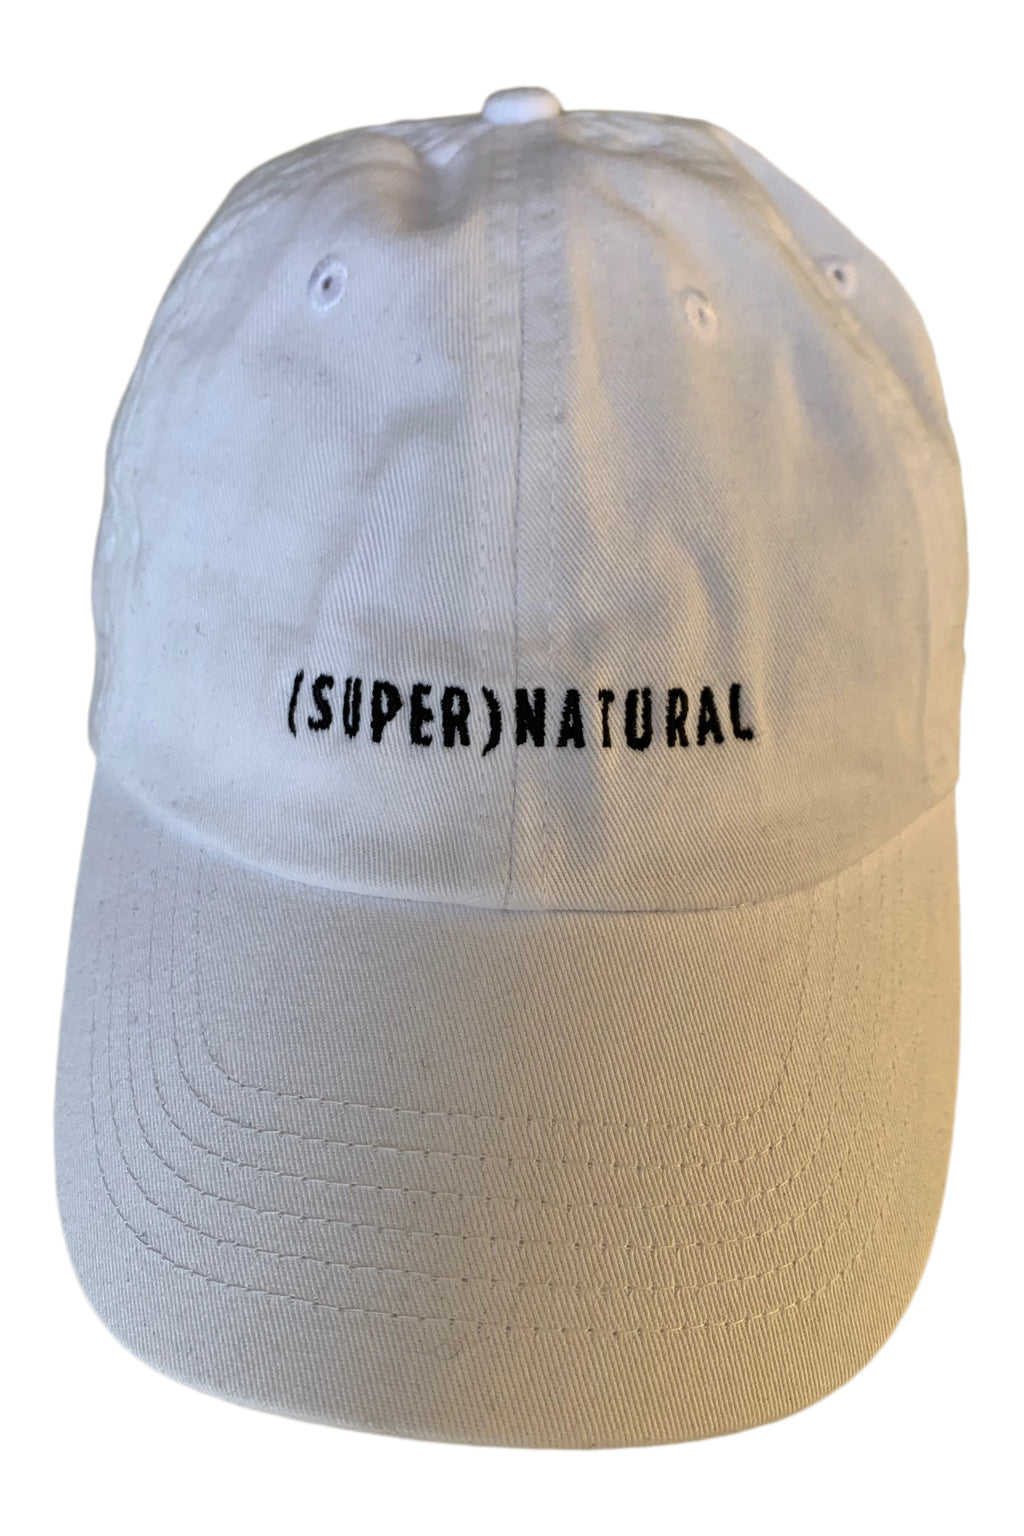 SUPERNATURAL HAT WHITE